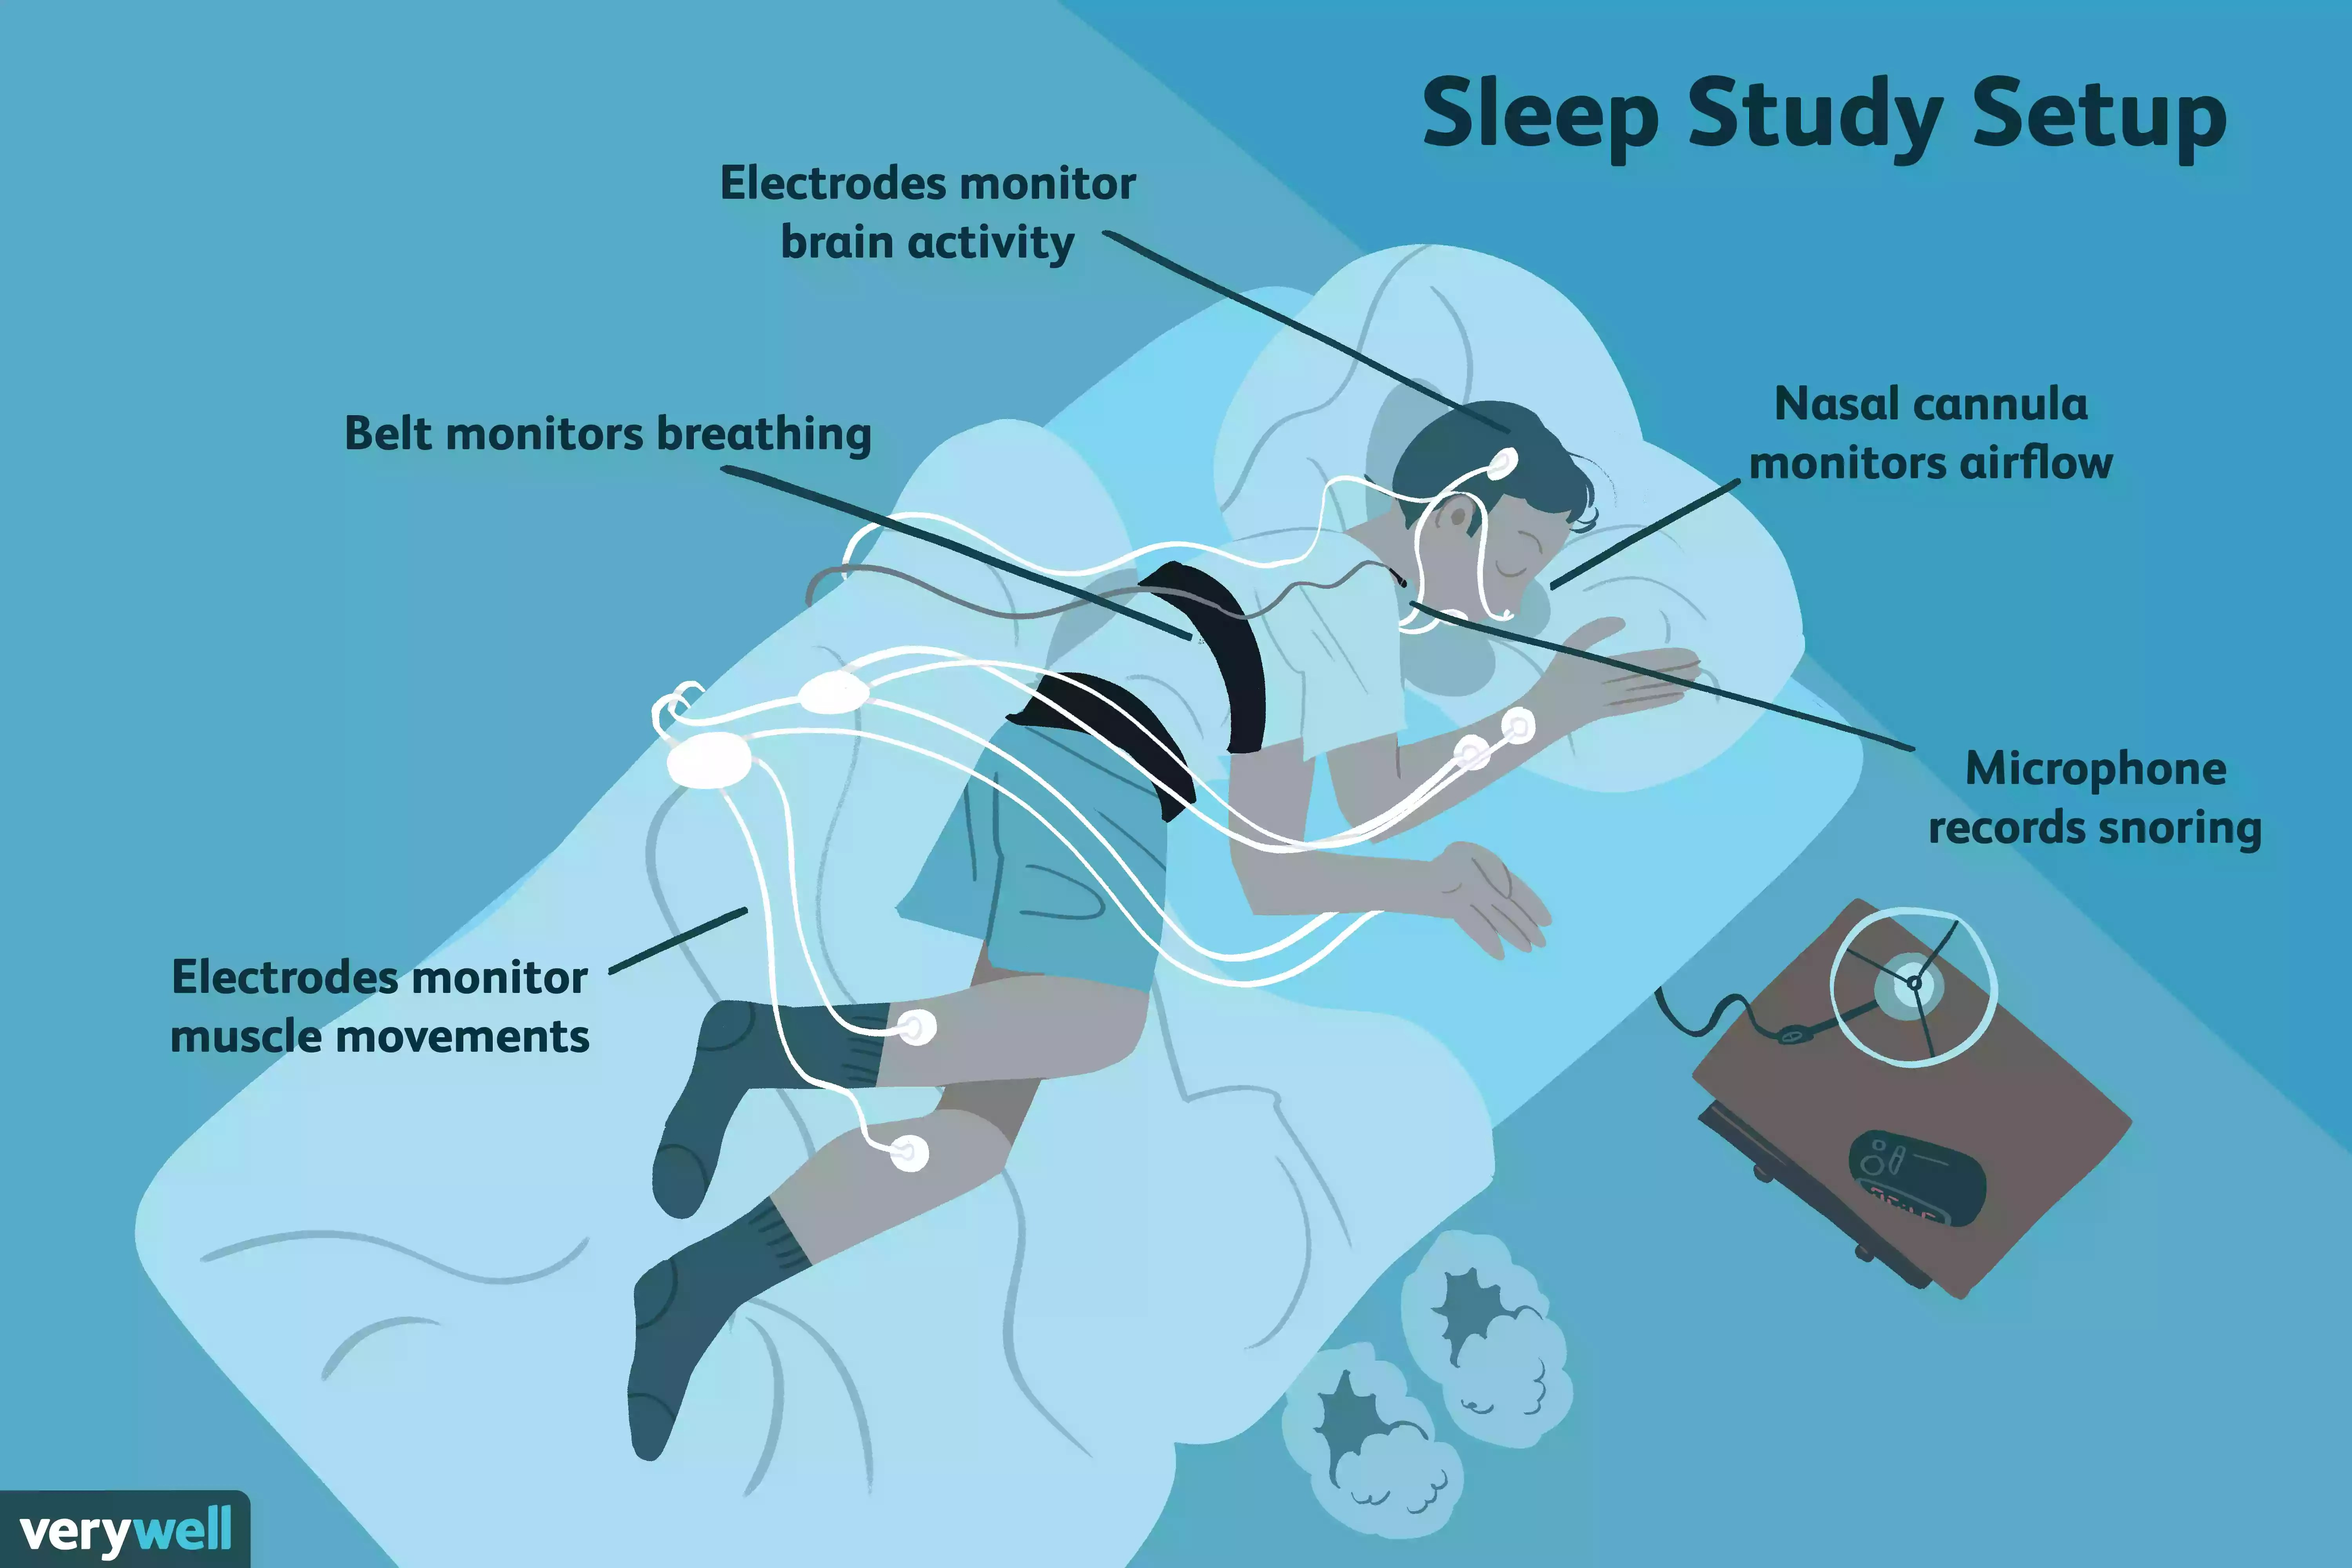 sleep study setup